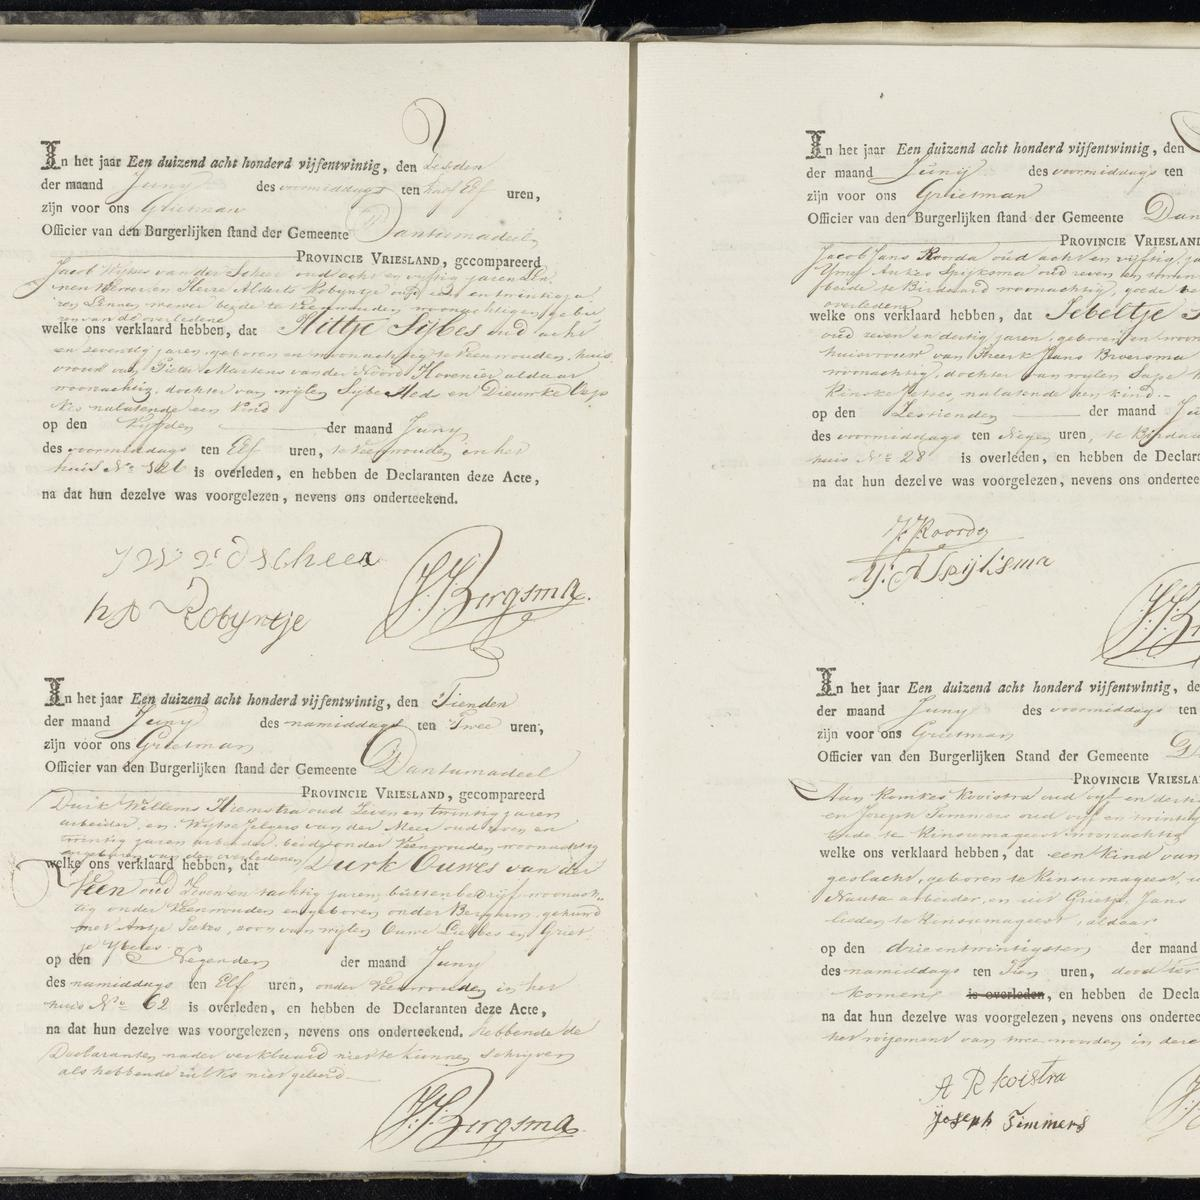 Civil registry of deaths, Dantumadeel, 1825, sheet 17